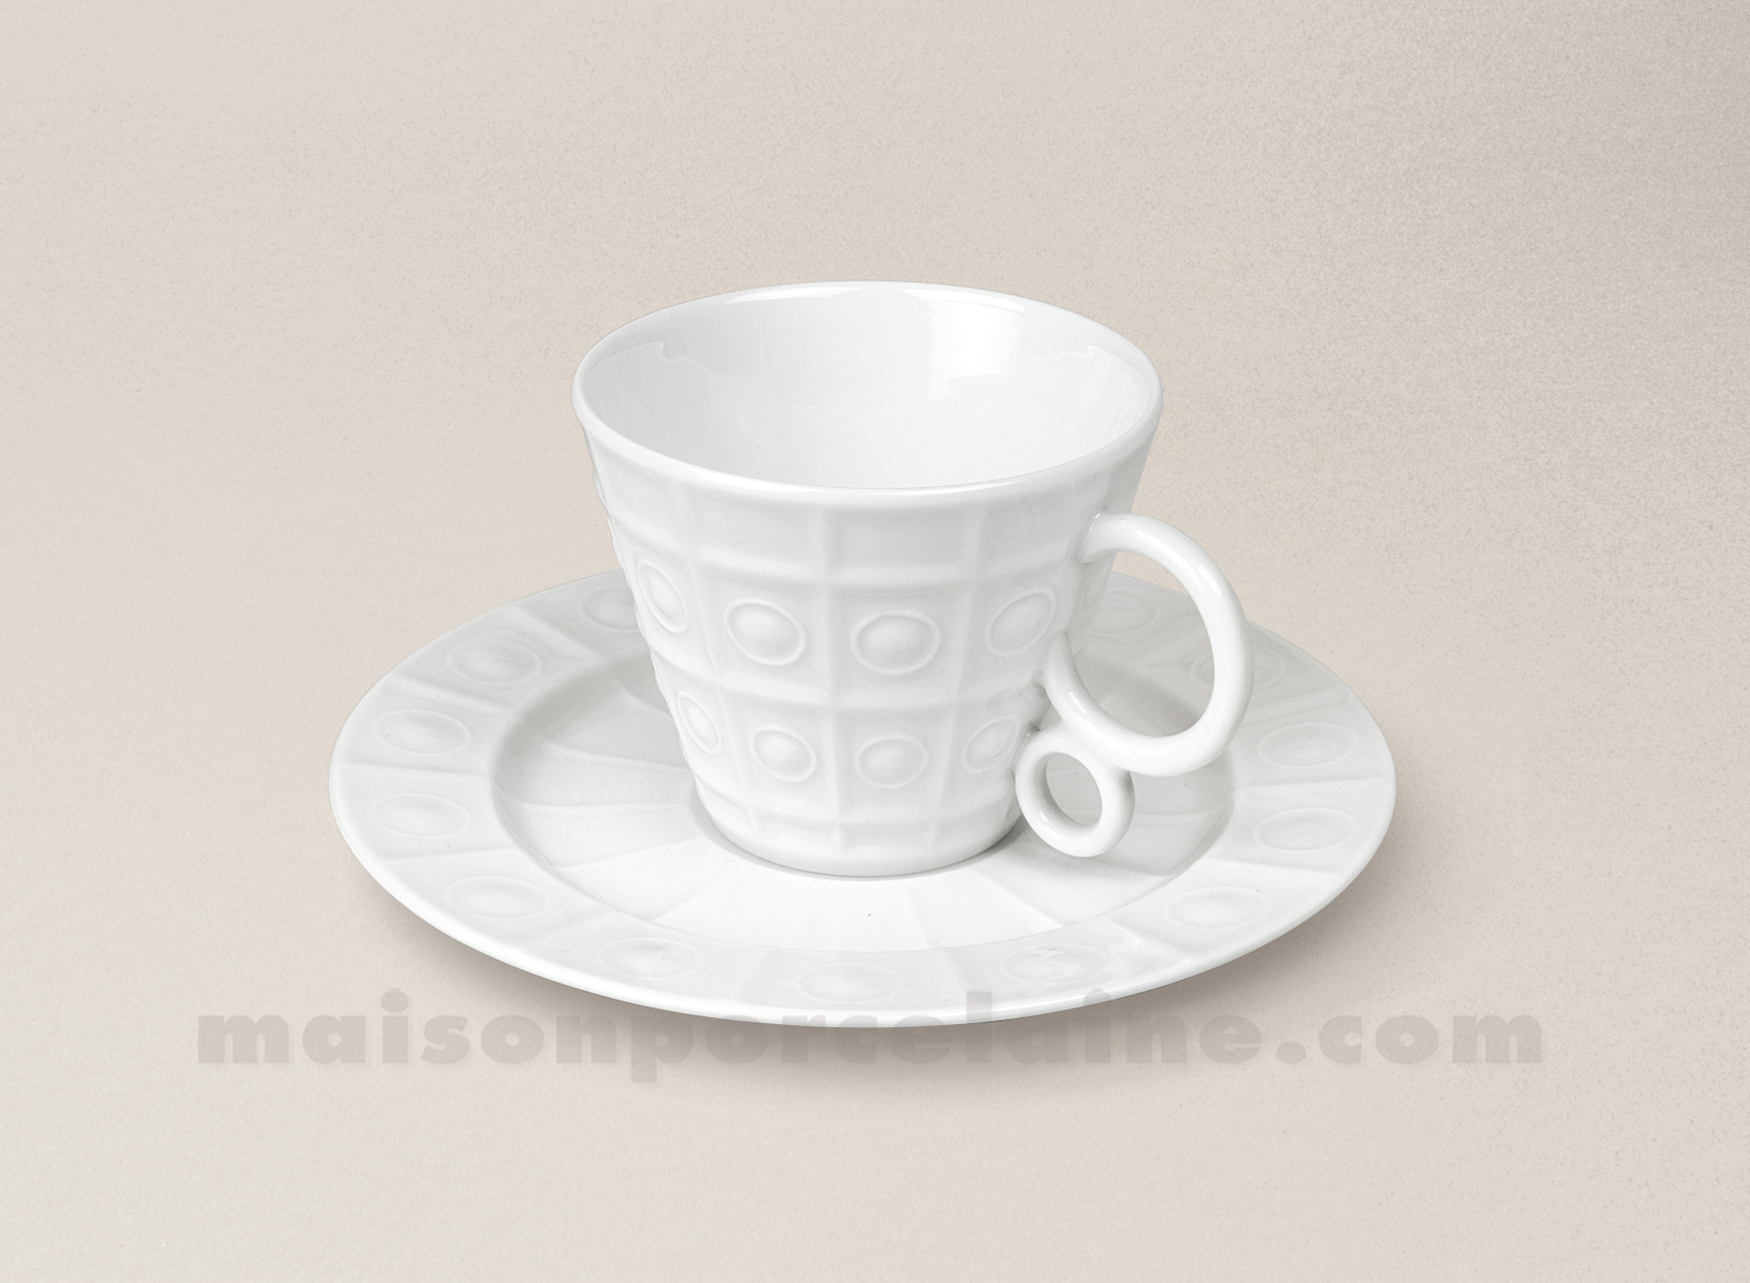 tasse cafe soucoupe limoges porcelaine blanche osmose maison de la porcelaine. Black Bedroom Furniture Sets. Home Design Ideas